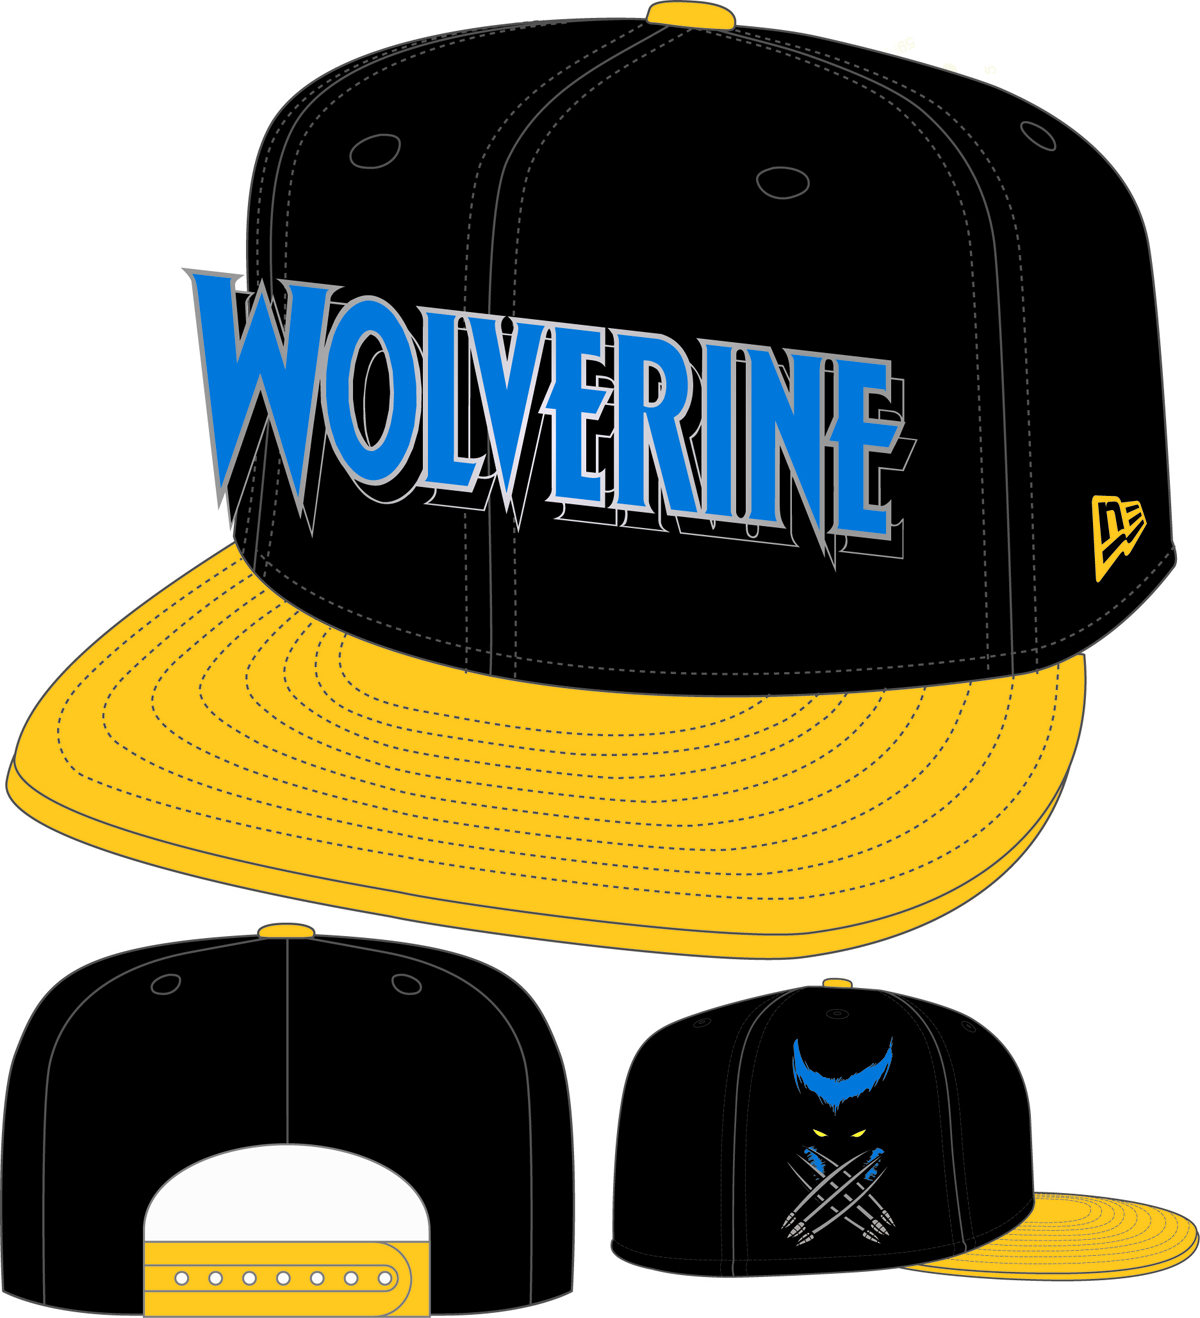 WOLVERINE WORD MARK SNAP BACK CAP